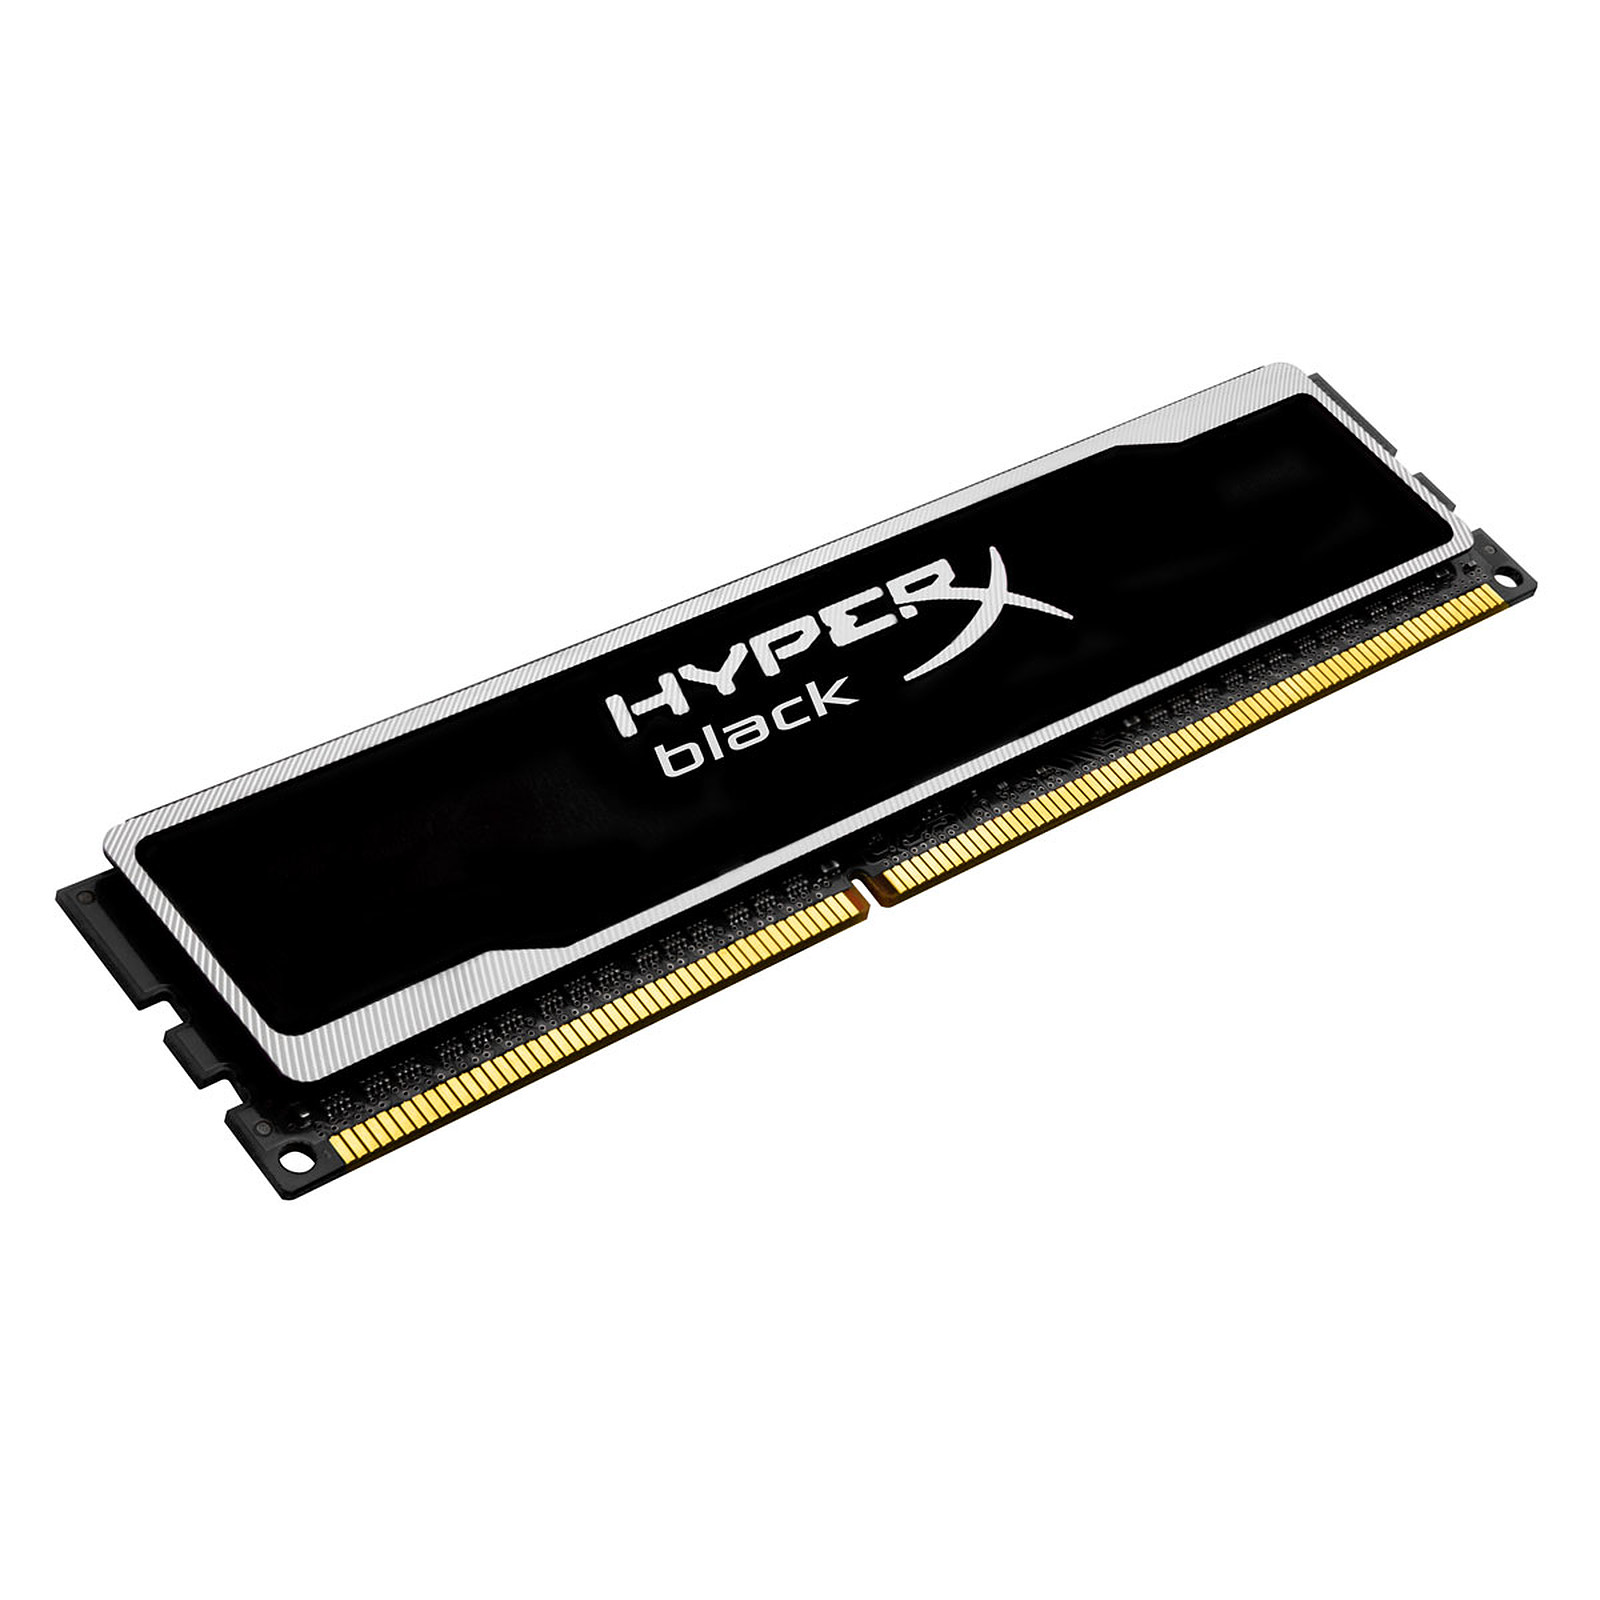 Kingston HyperX black 8 Go DDR3 1600 MHz CL10